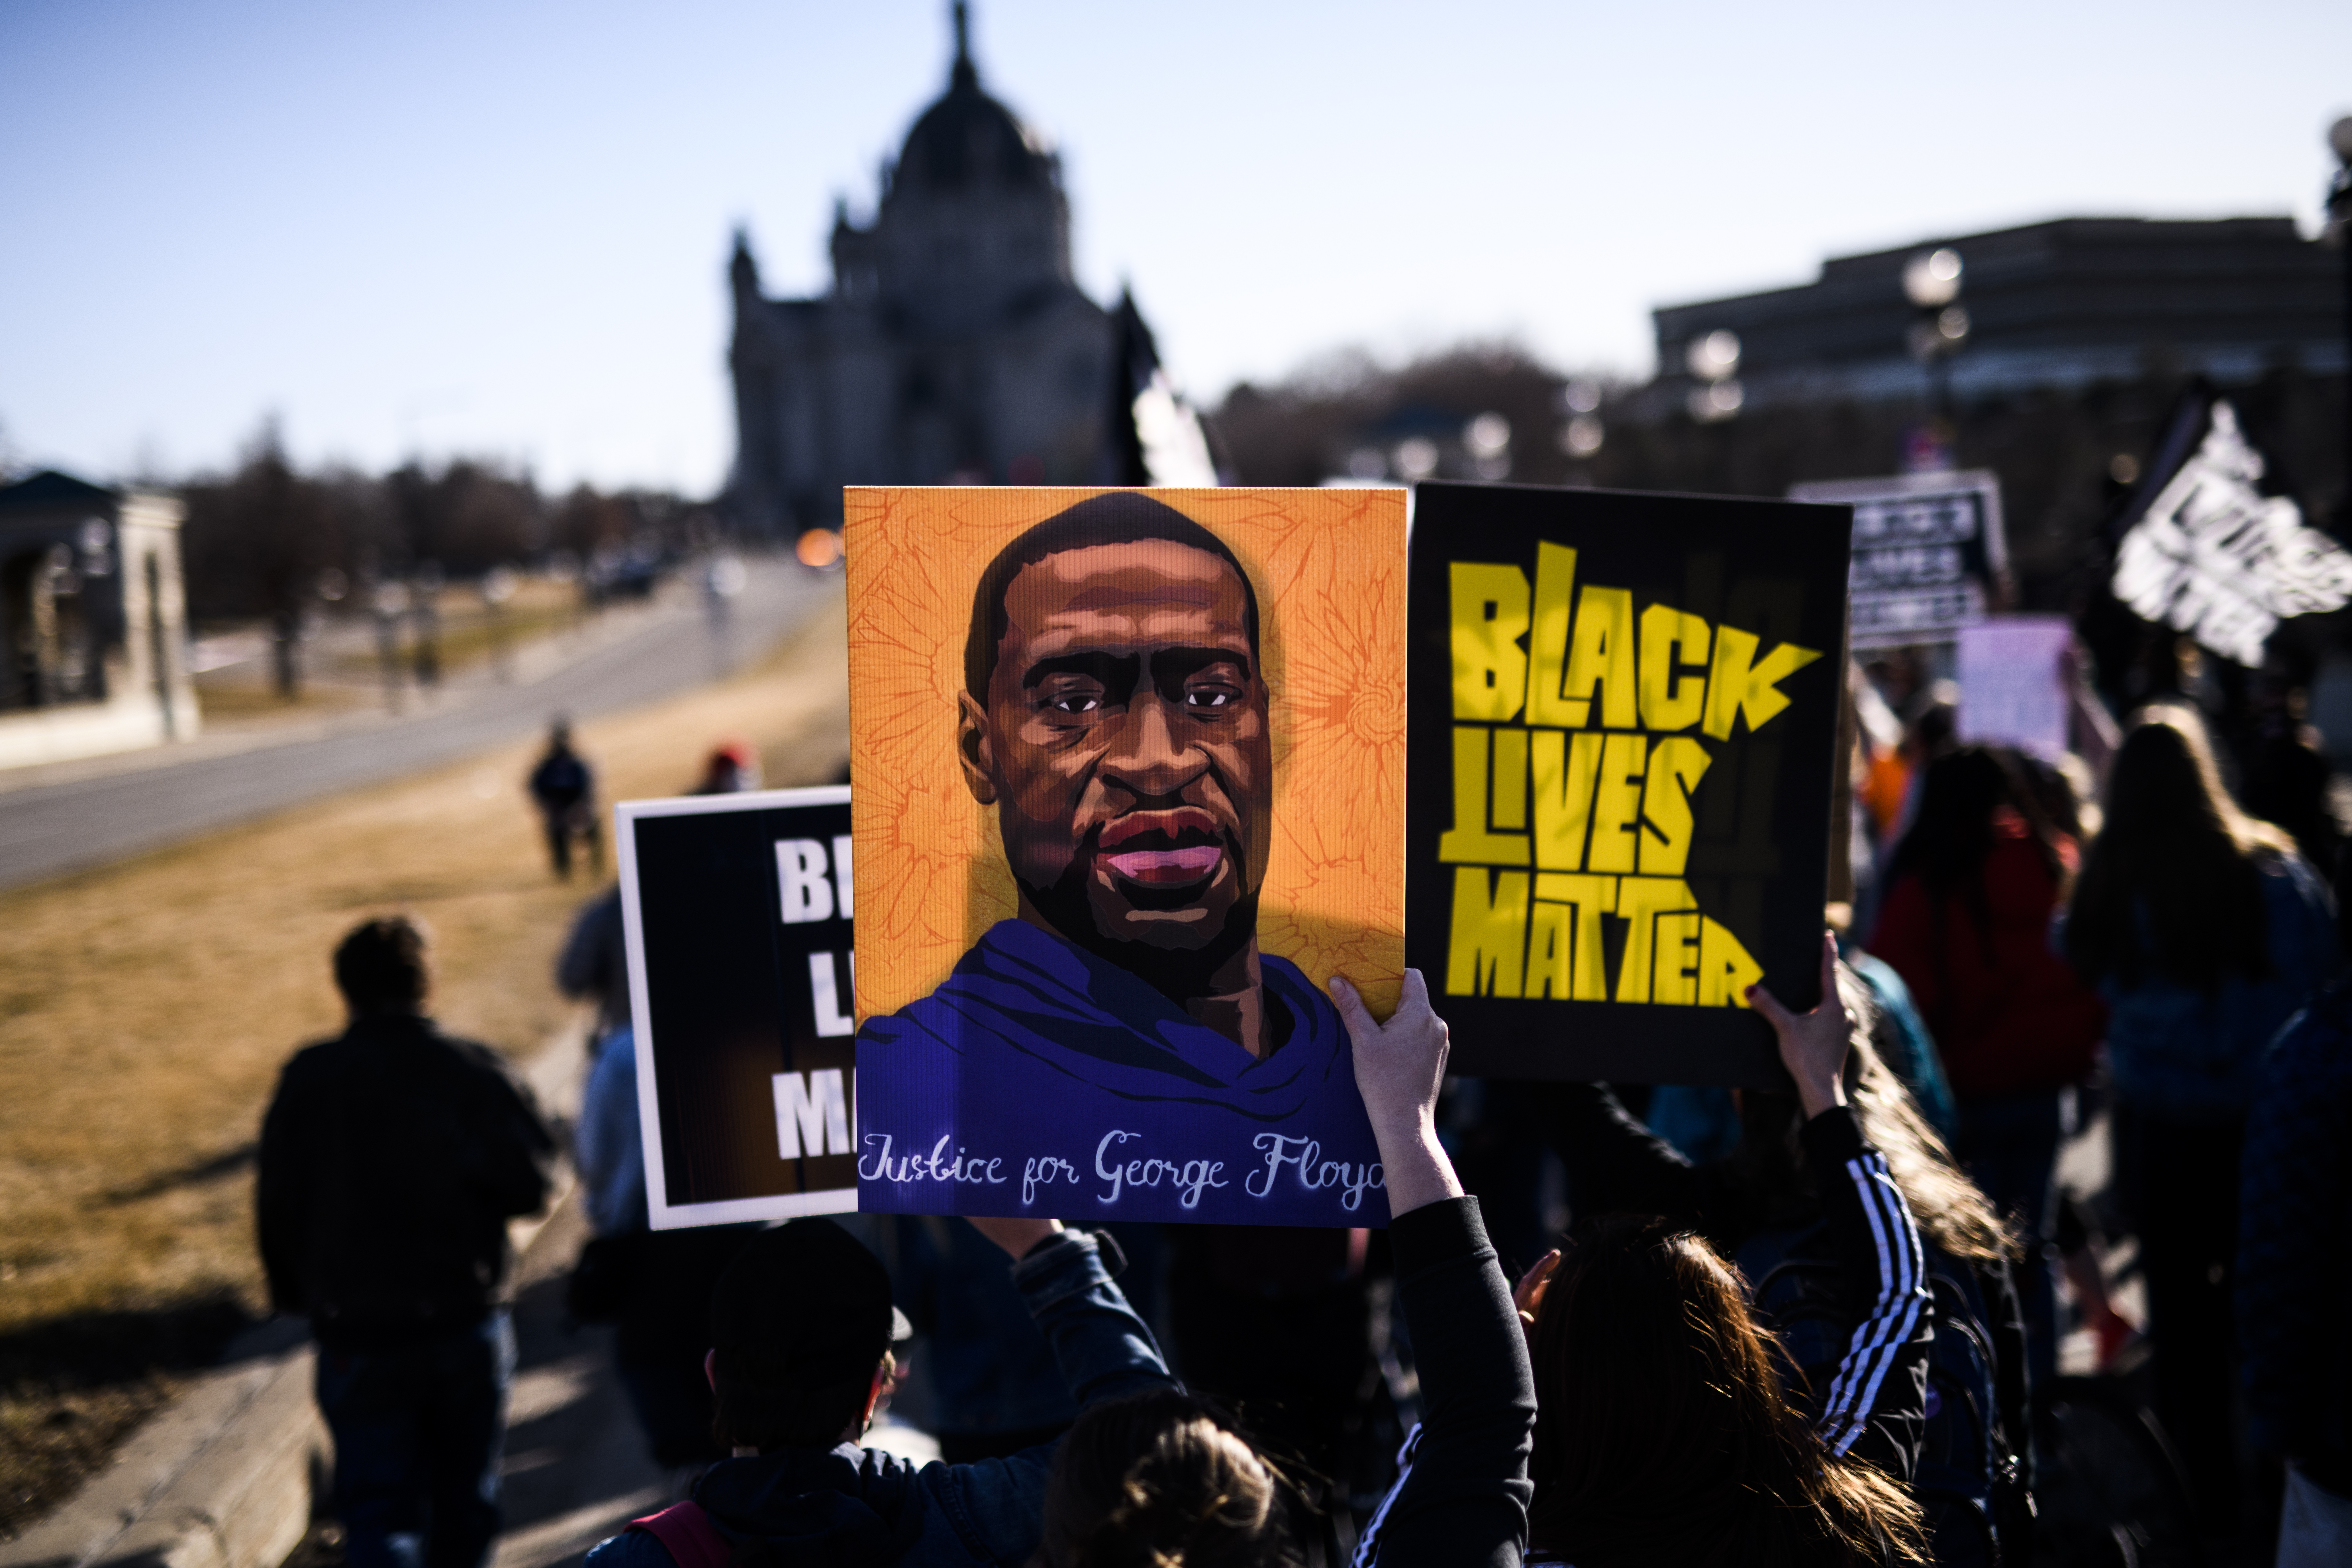 People march near the Minnesota State Capitol to honor George Floyd on March 19, 2021 in St. Paul, Minnesota.